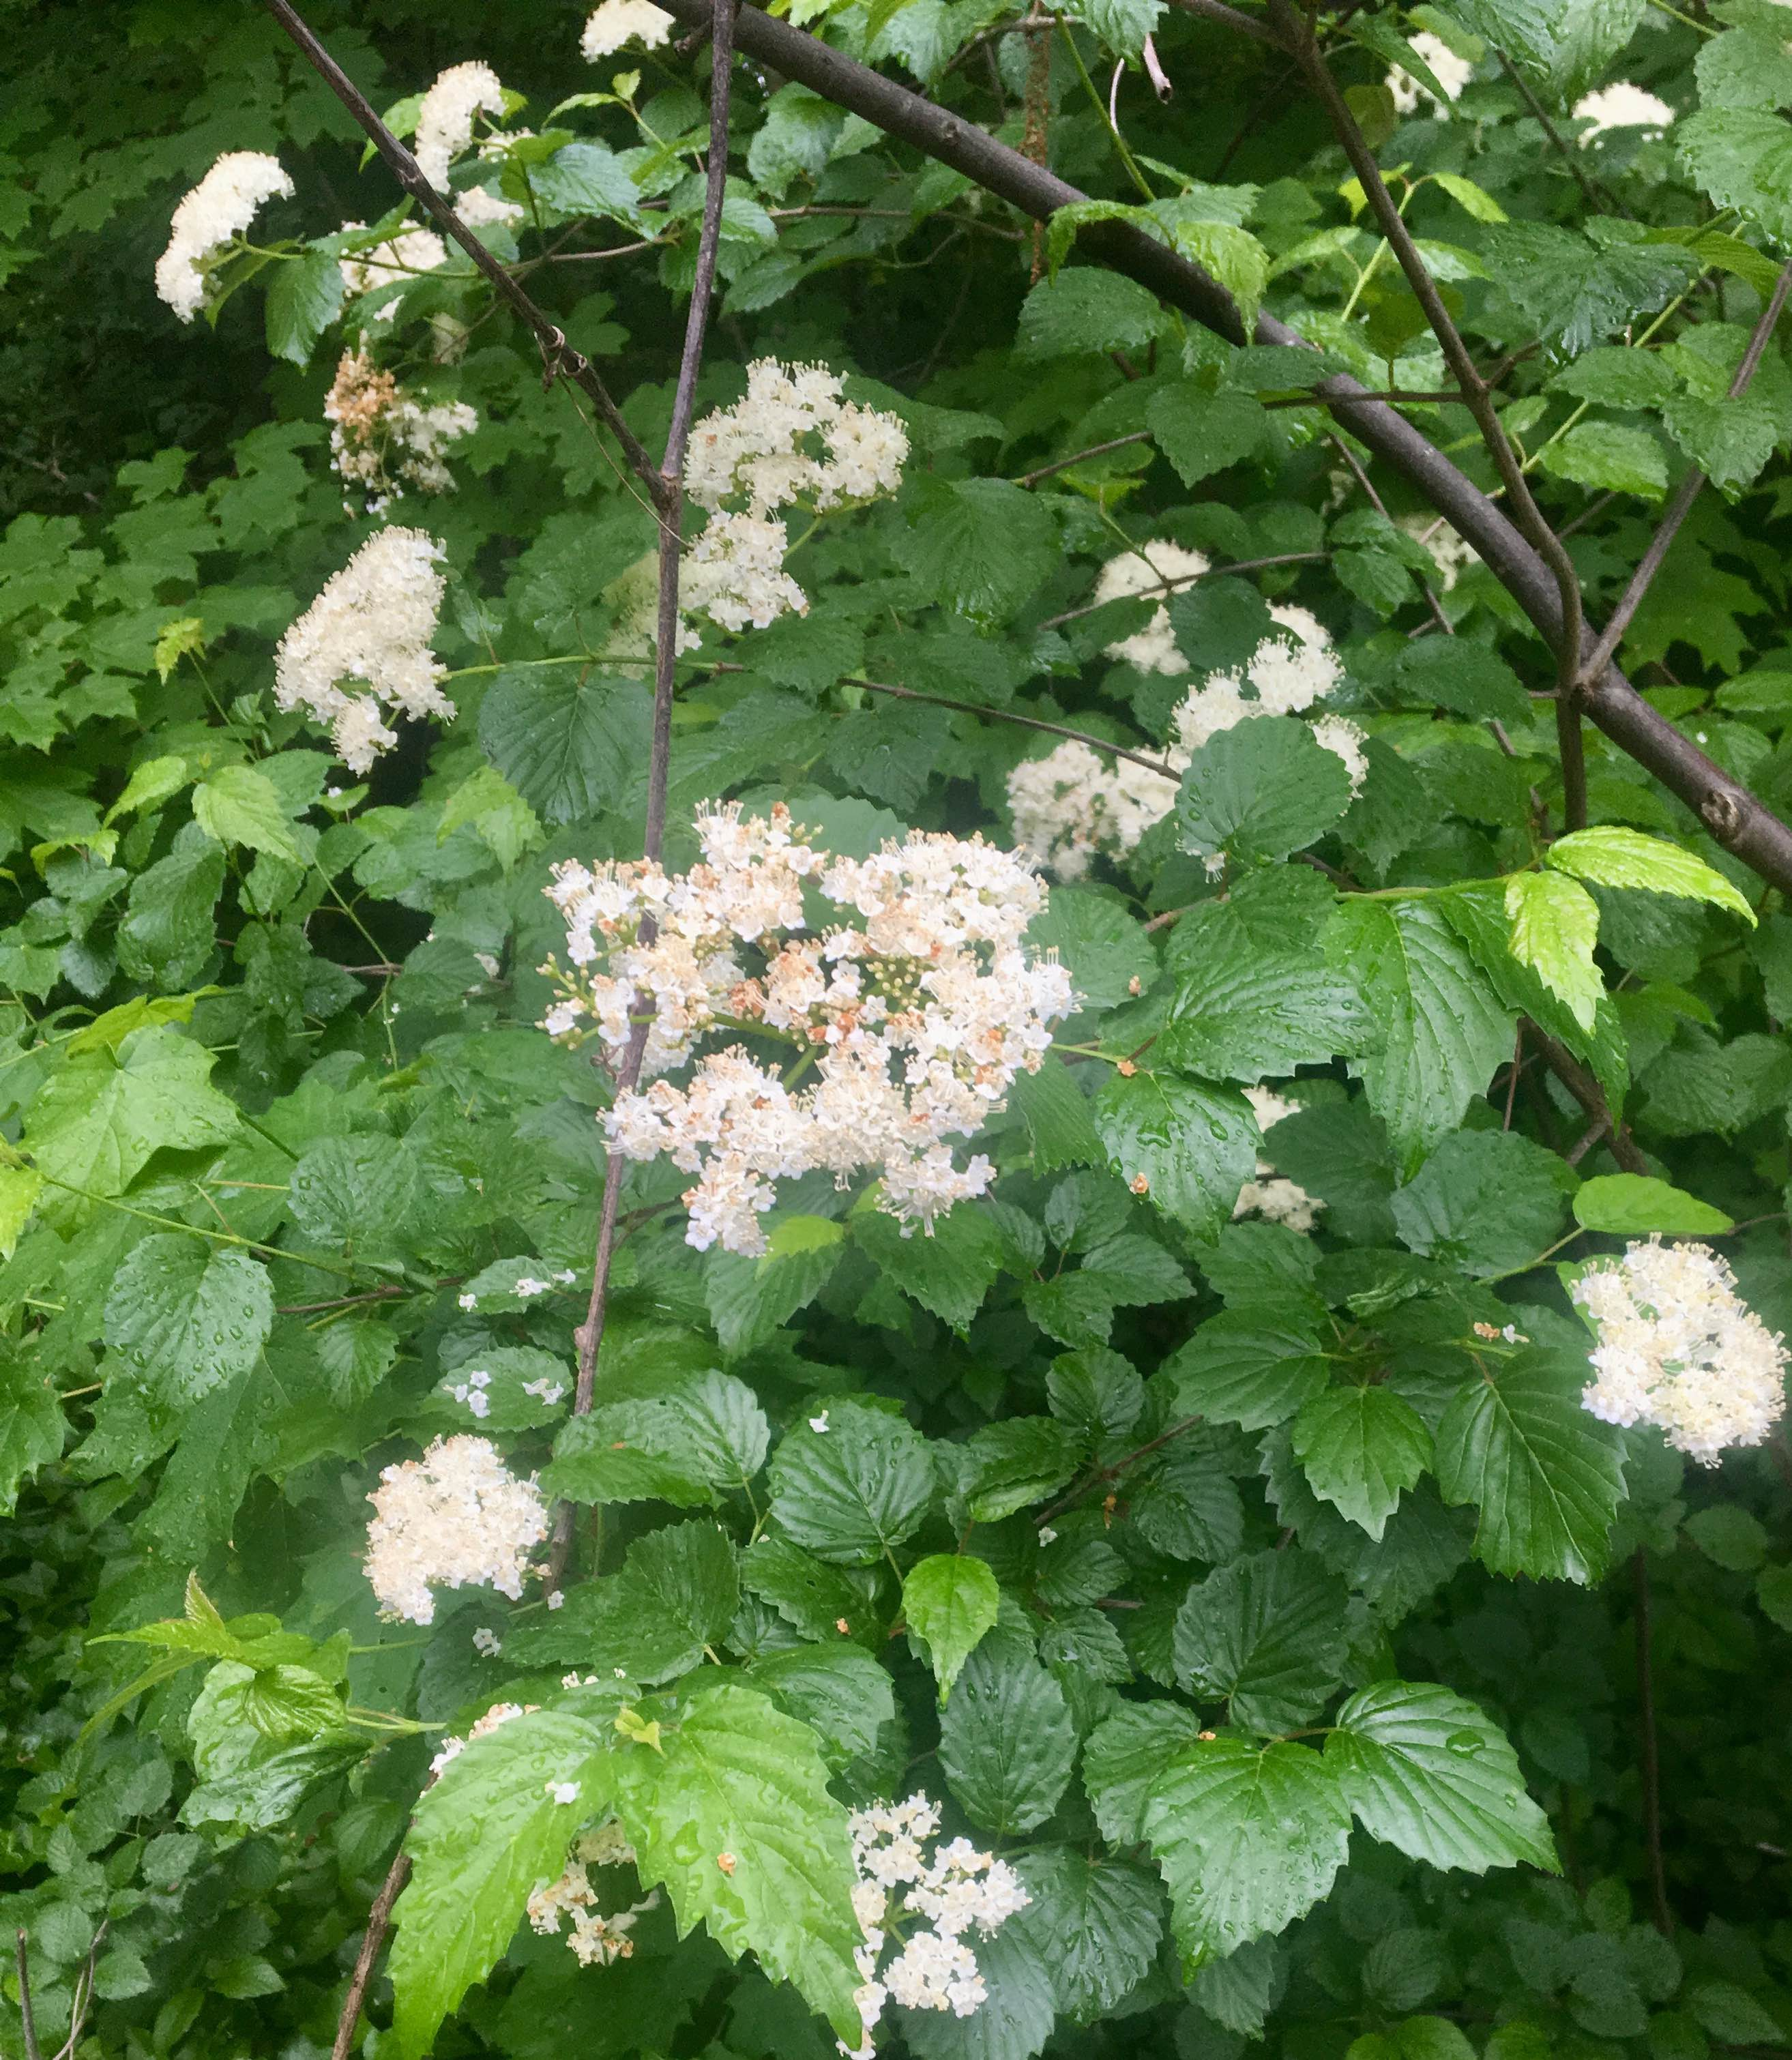 The Scientific Name is Viburnum dentatum. You will likely hear them called Southern Arrowwood, Arrowwood Viburnum, Roughish Arrowwood, Smooth Arrowwood. This picture shows the Opposite, coarsely toothed leaves and showy flat-topped clusters of white flowers of Viburnum dentatum